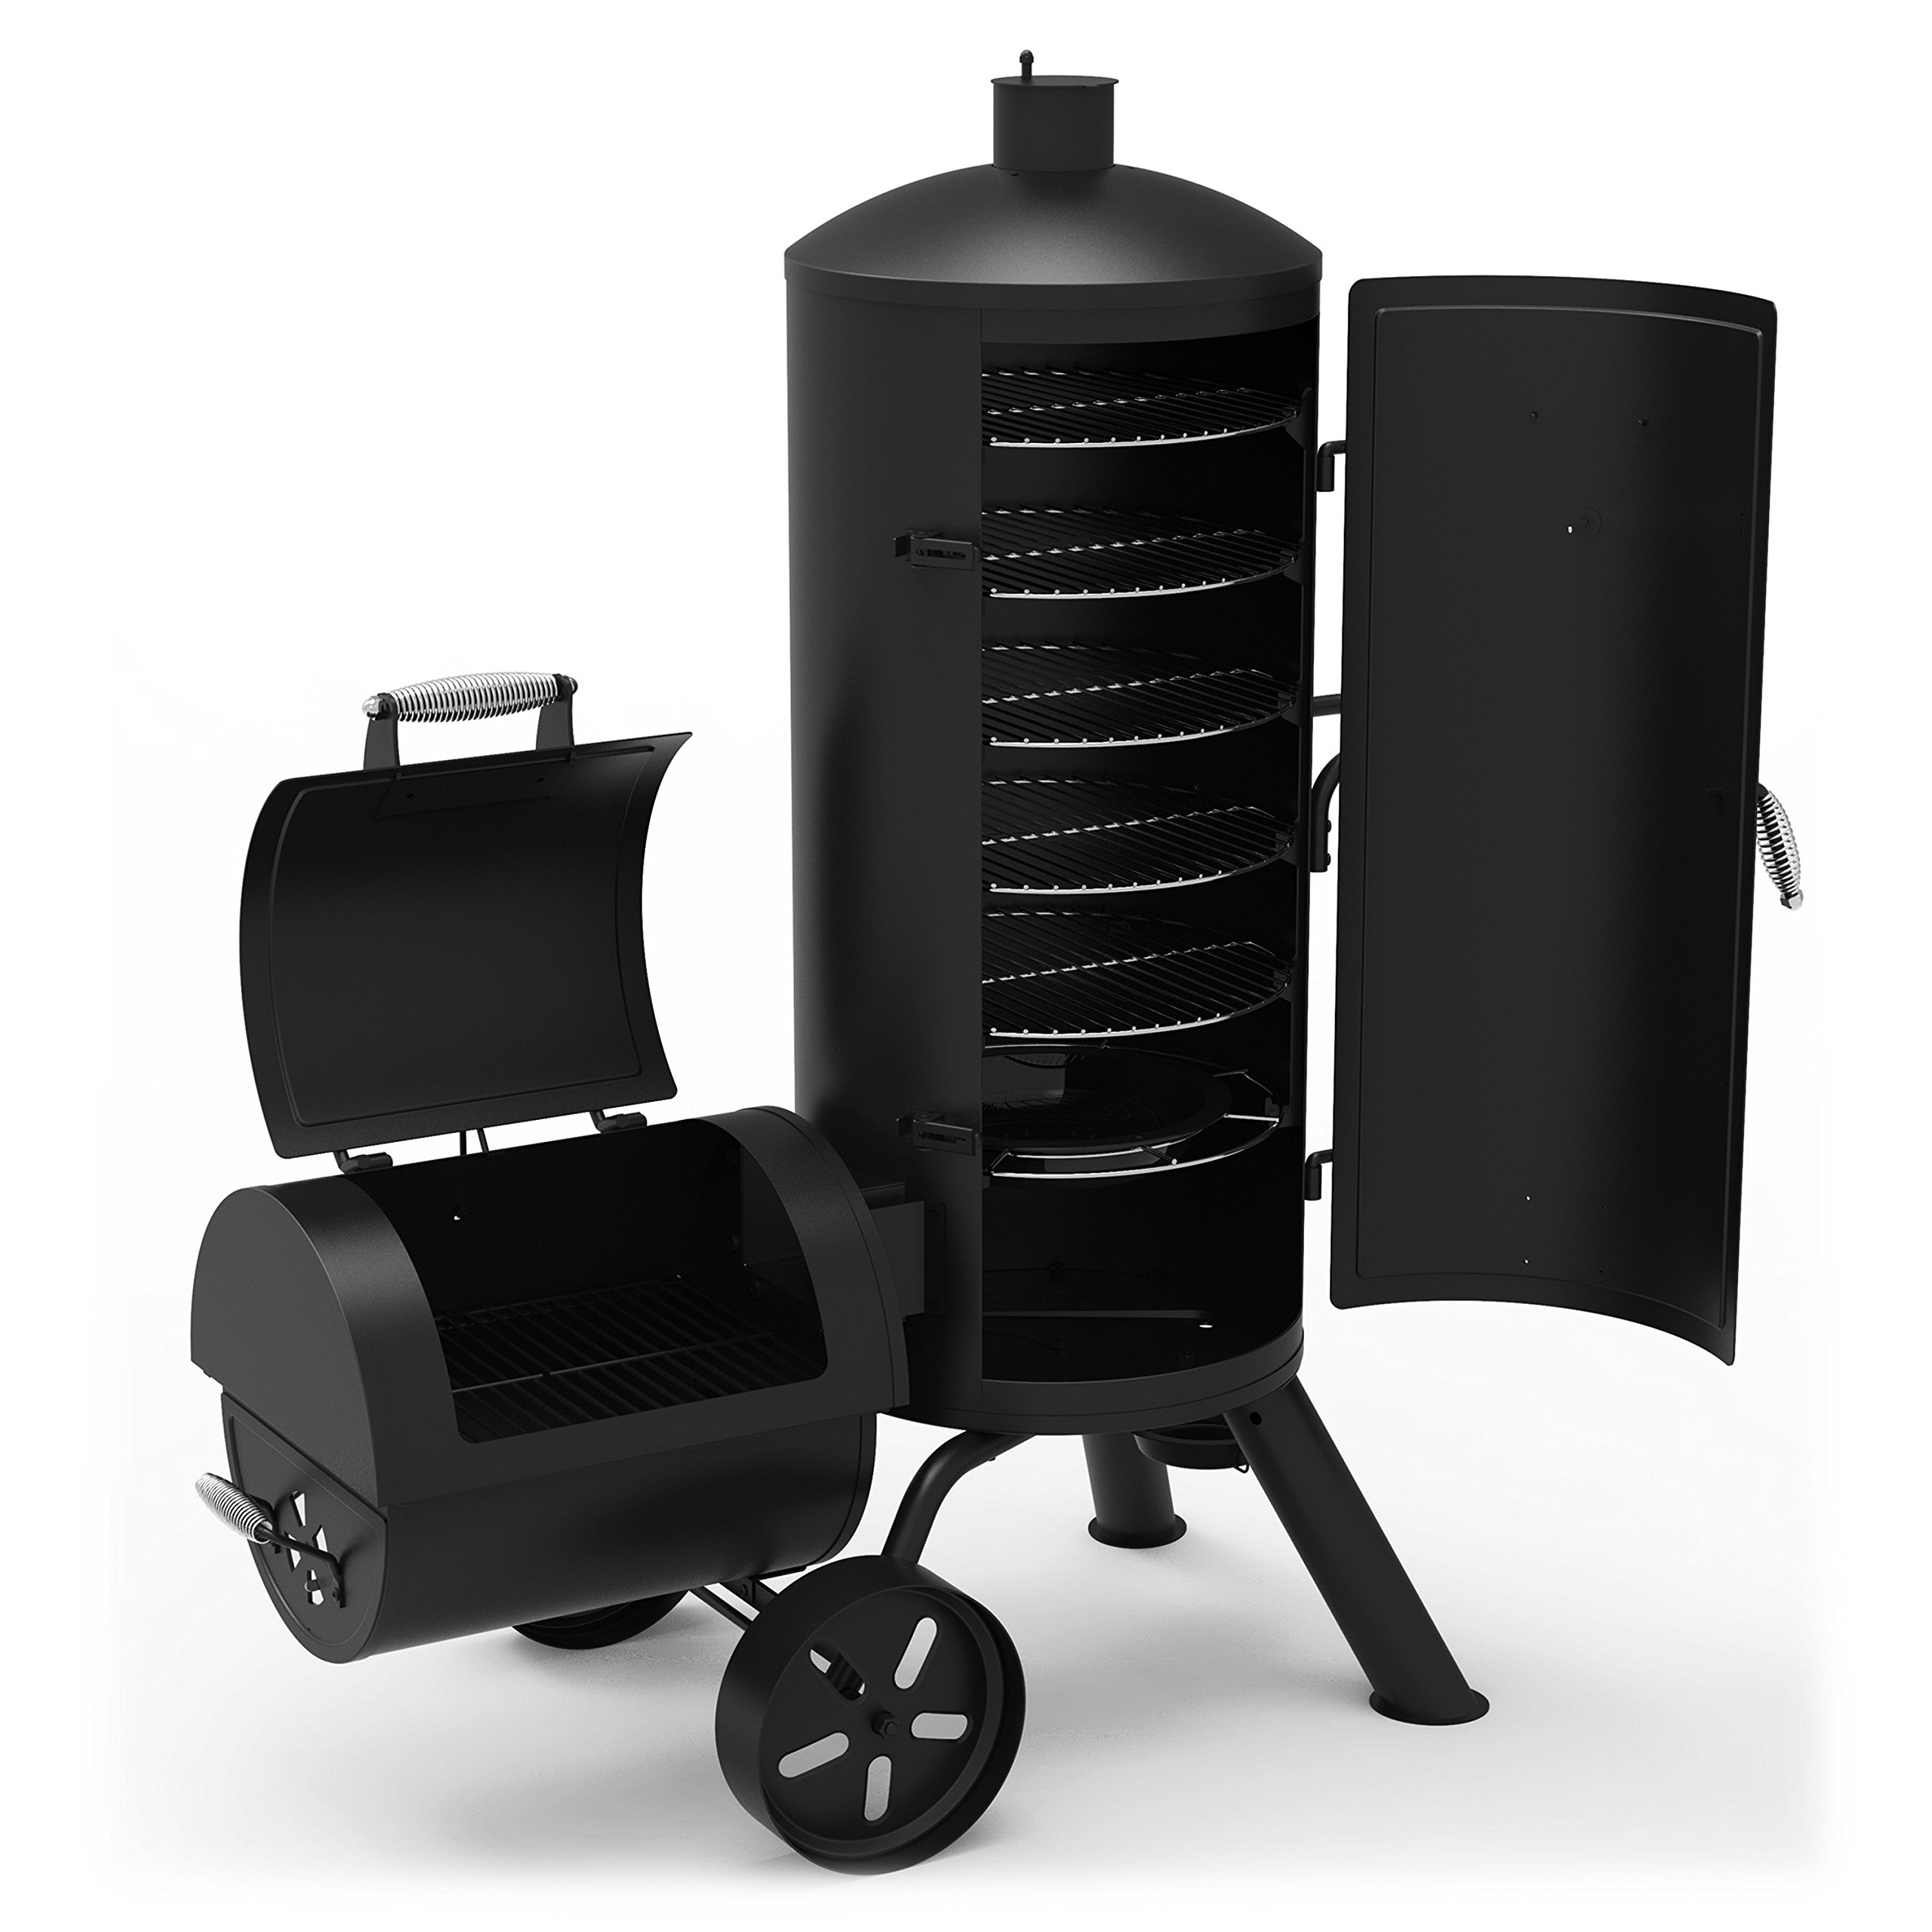 Dyna-Glo Signature Series DGSS1382VCS-D Heavy-Duty Vertical Offset Charcoal Smoker & Grill by Dyna-Glo